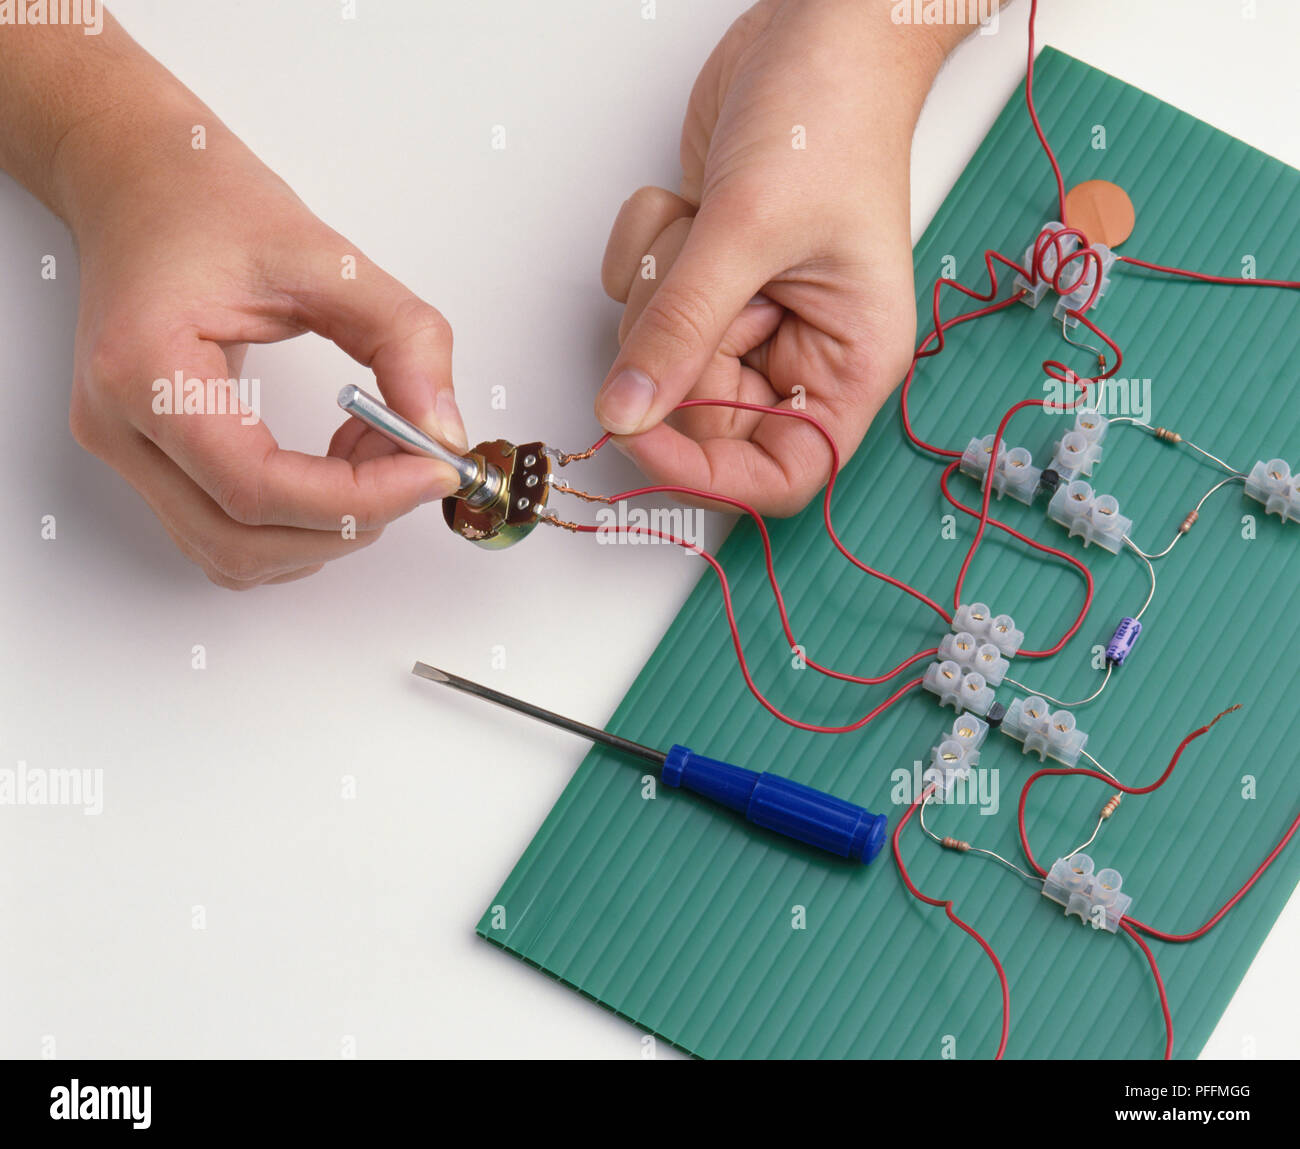 Boys Hands Attaching Wires From Connectors To Terminals Of Variable Resistor Circuit Building A Radio Close Up